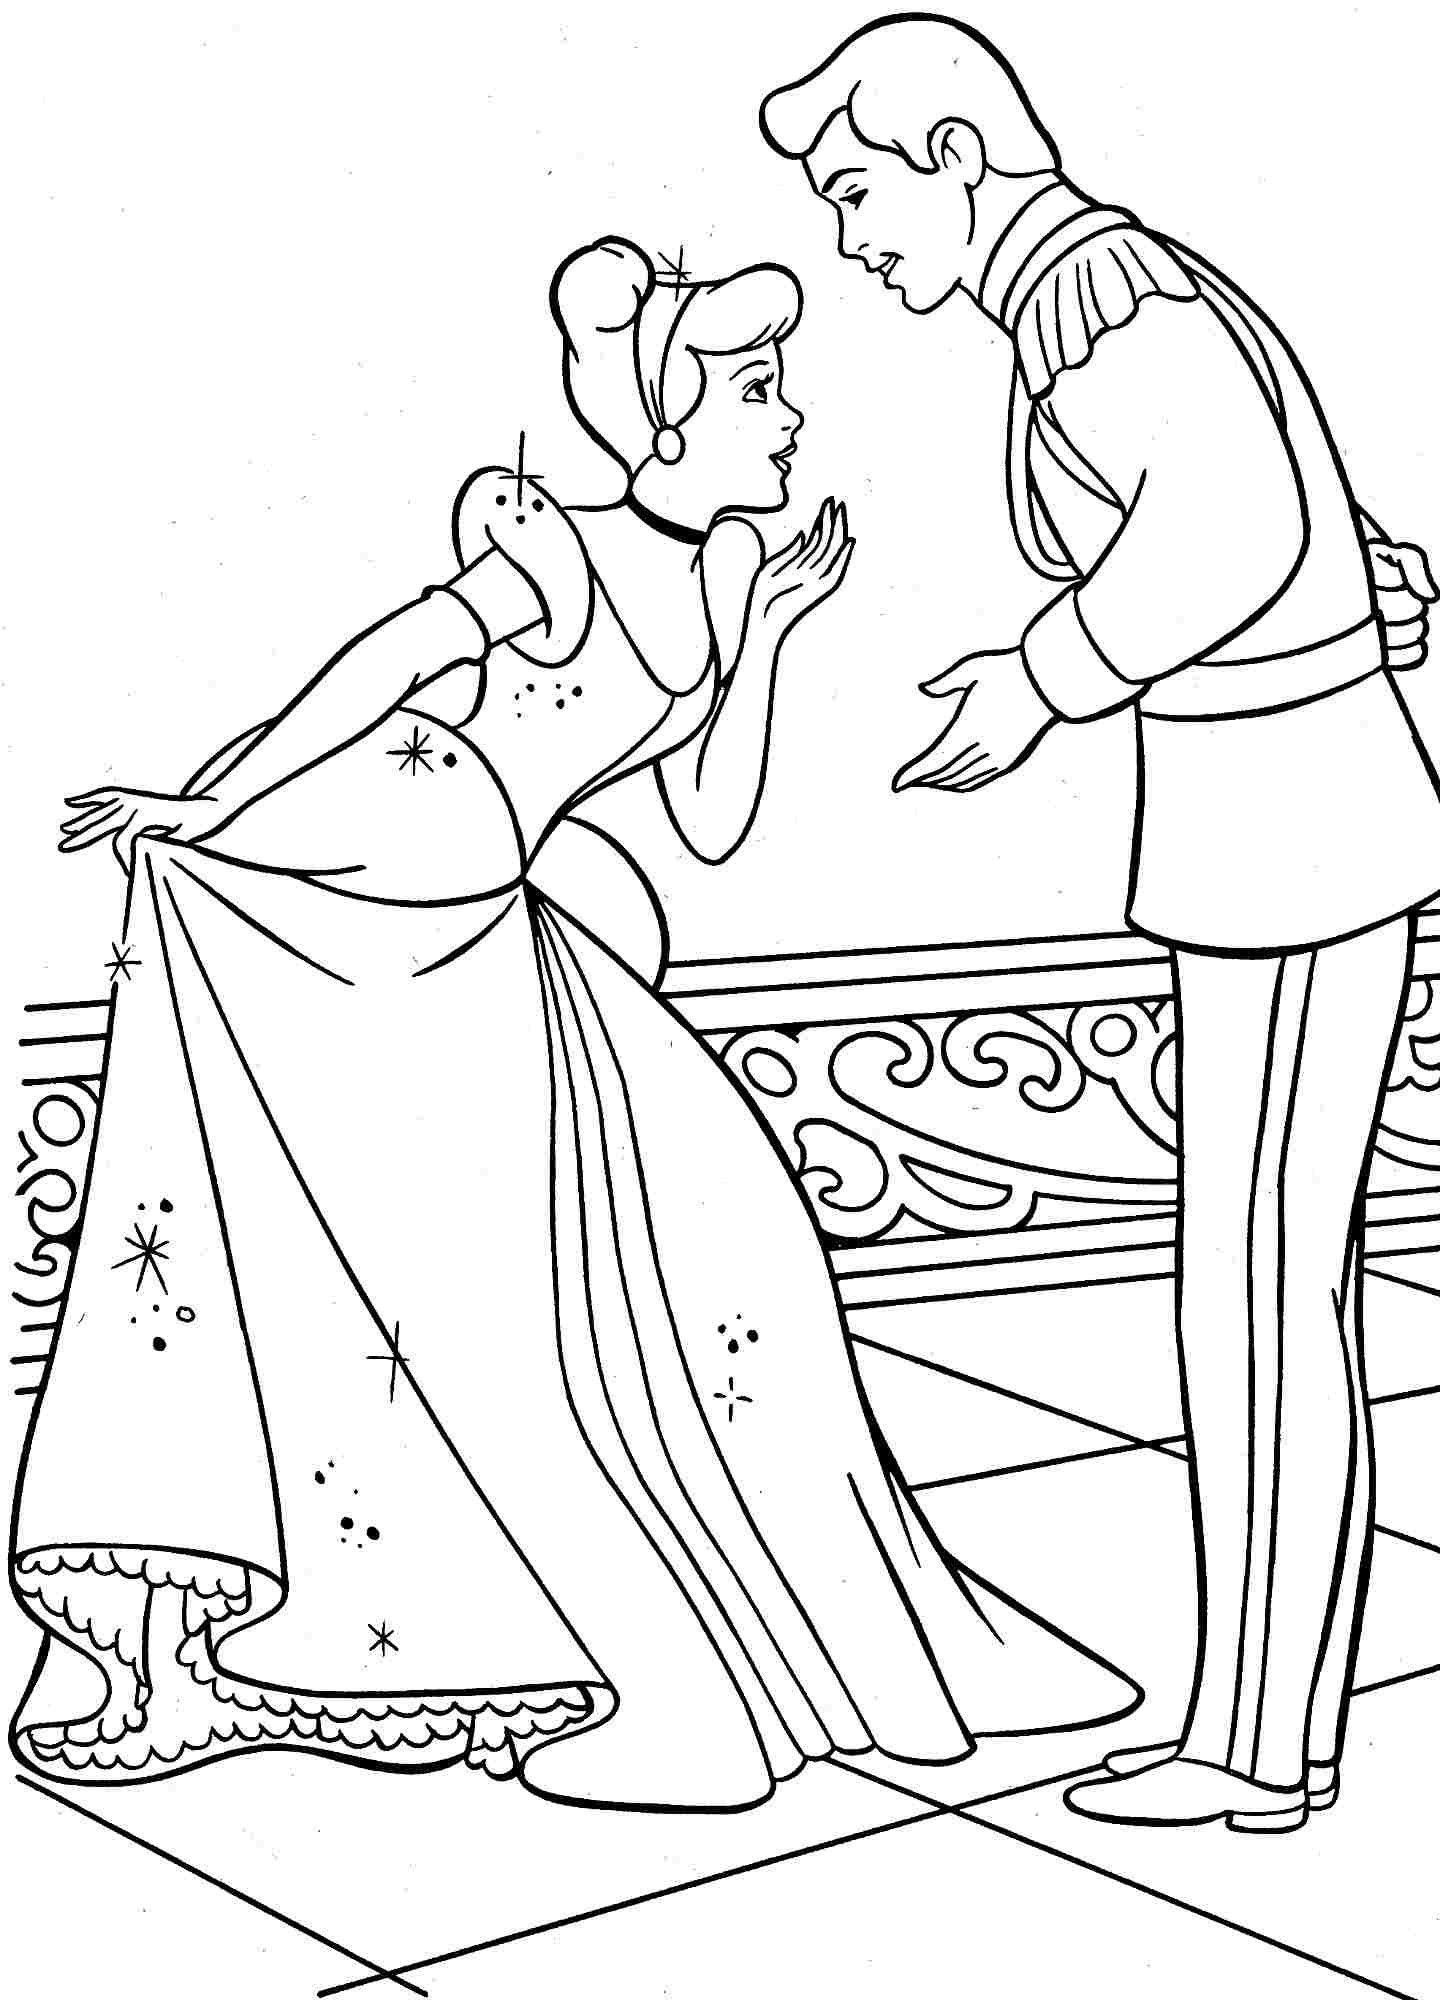 Disney Princess Cinderella Coloring Pages Games From The Thousands